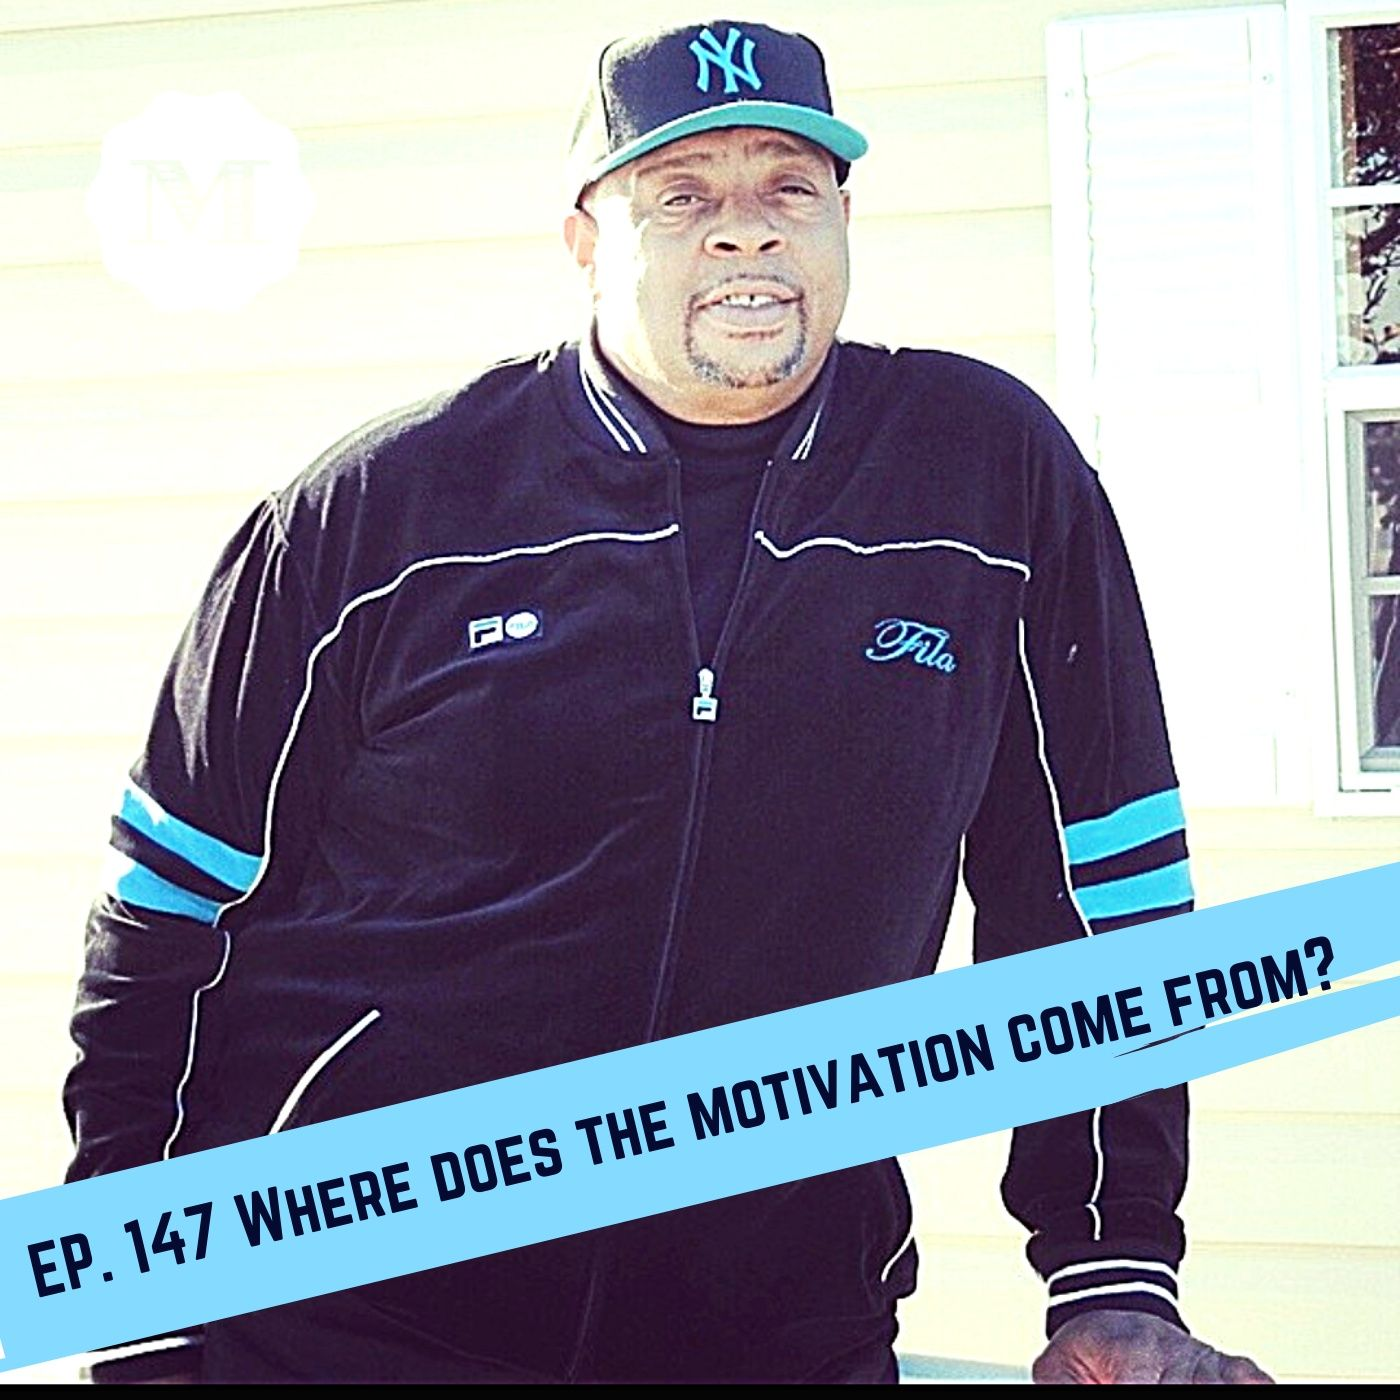 Ep. 147 Where does the motivation come from?